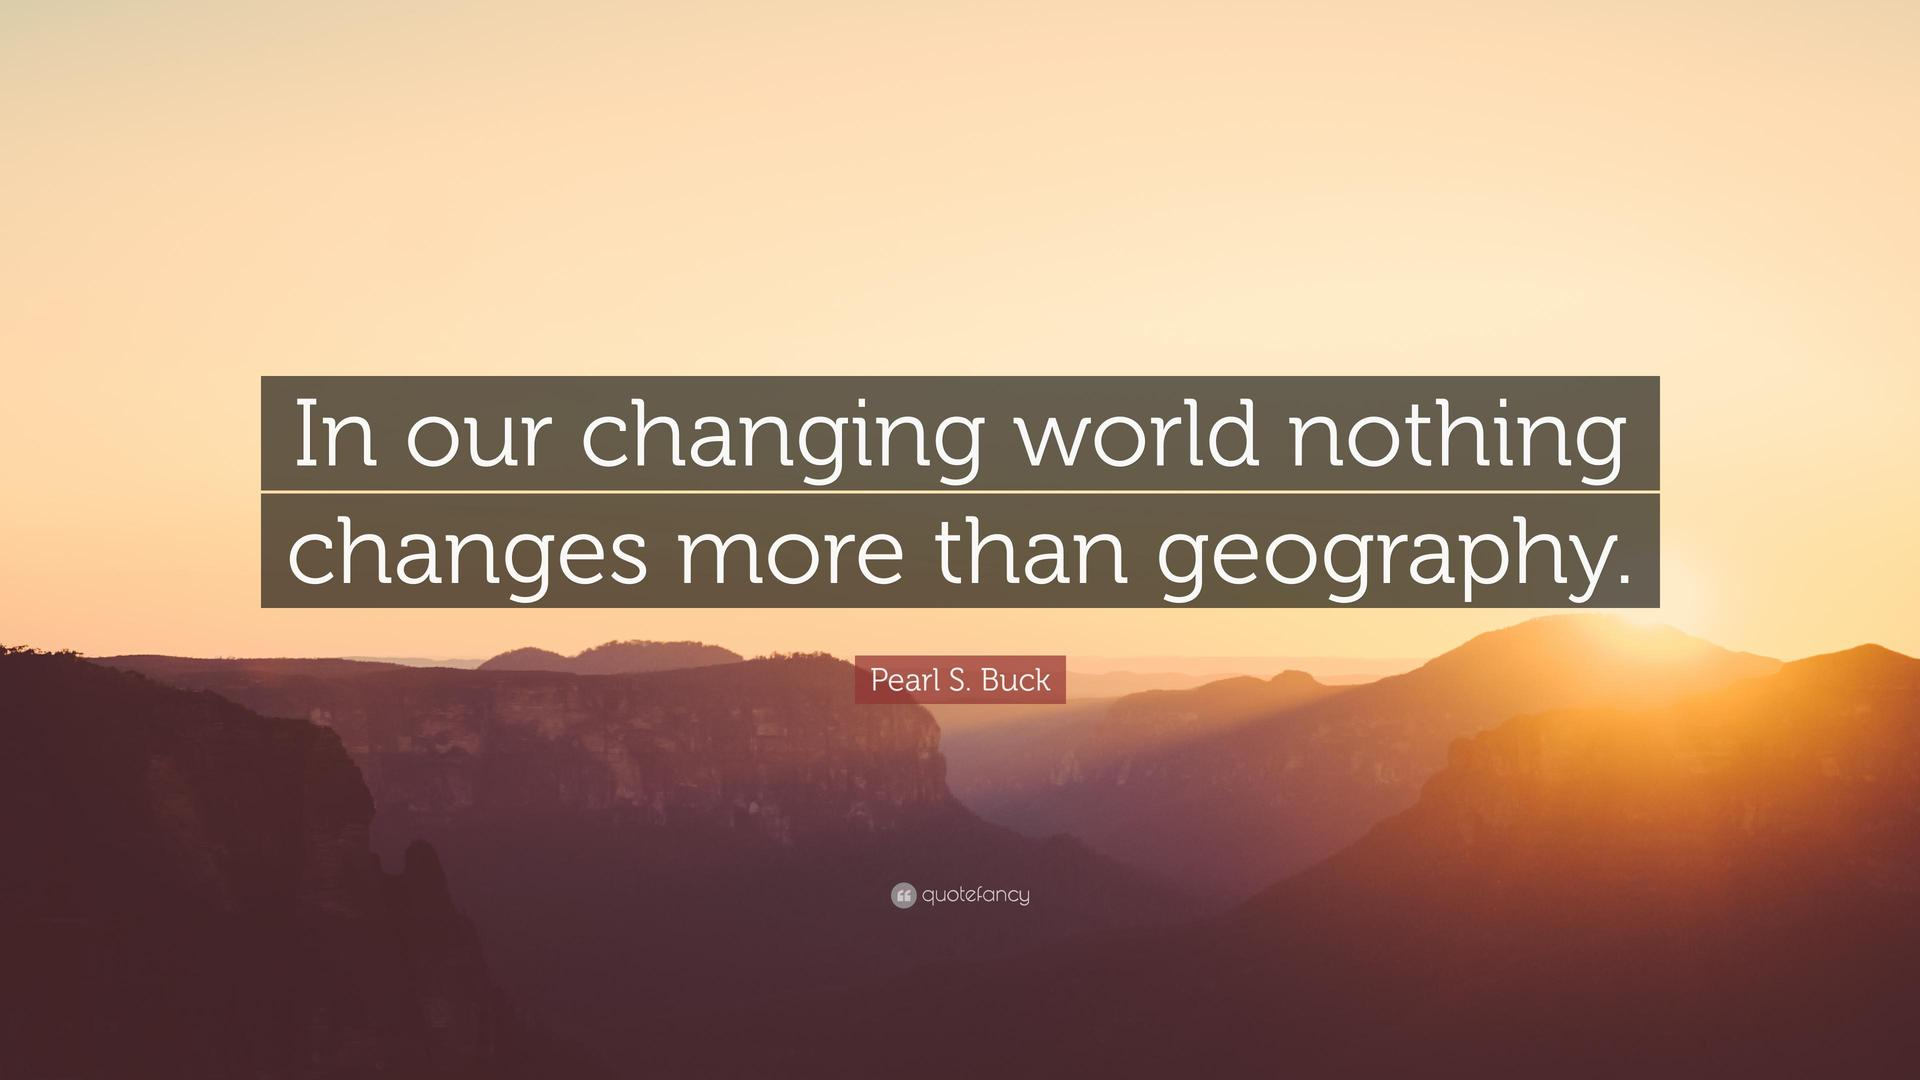 IN OUR CHANGING WORLD NOTHING CHANGES MORE THAN GEOGRAPHY